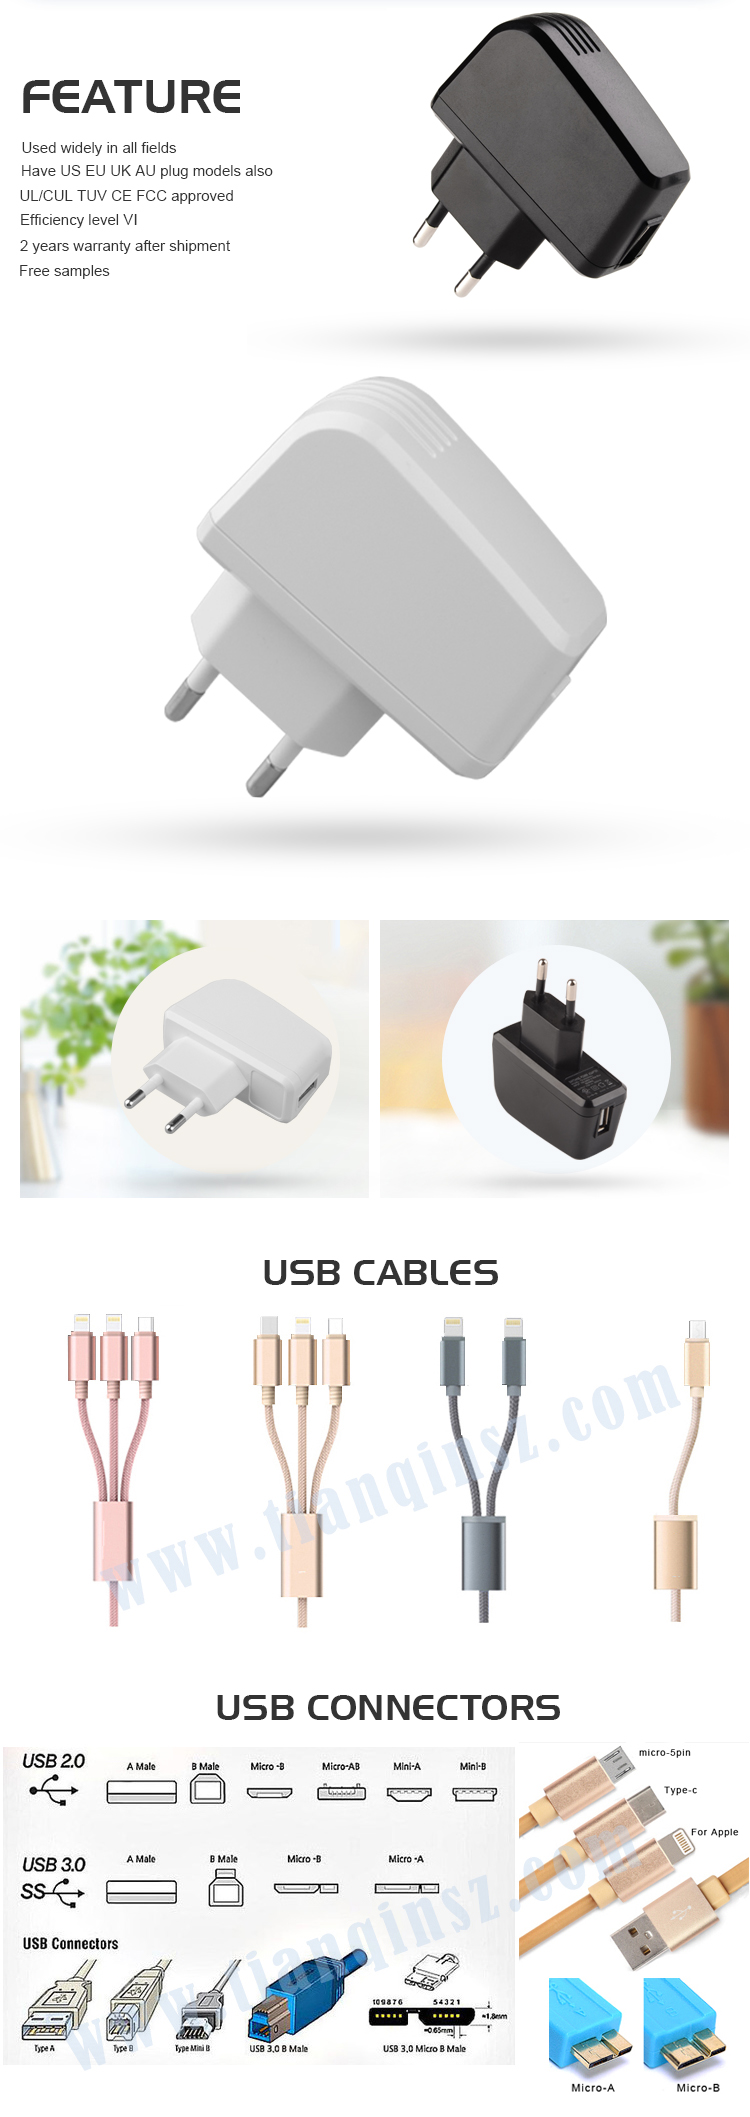 Level VI usb wall charger 2.5a eu plug with GS CE SAA FCC ROHS,2years warranty